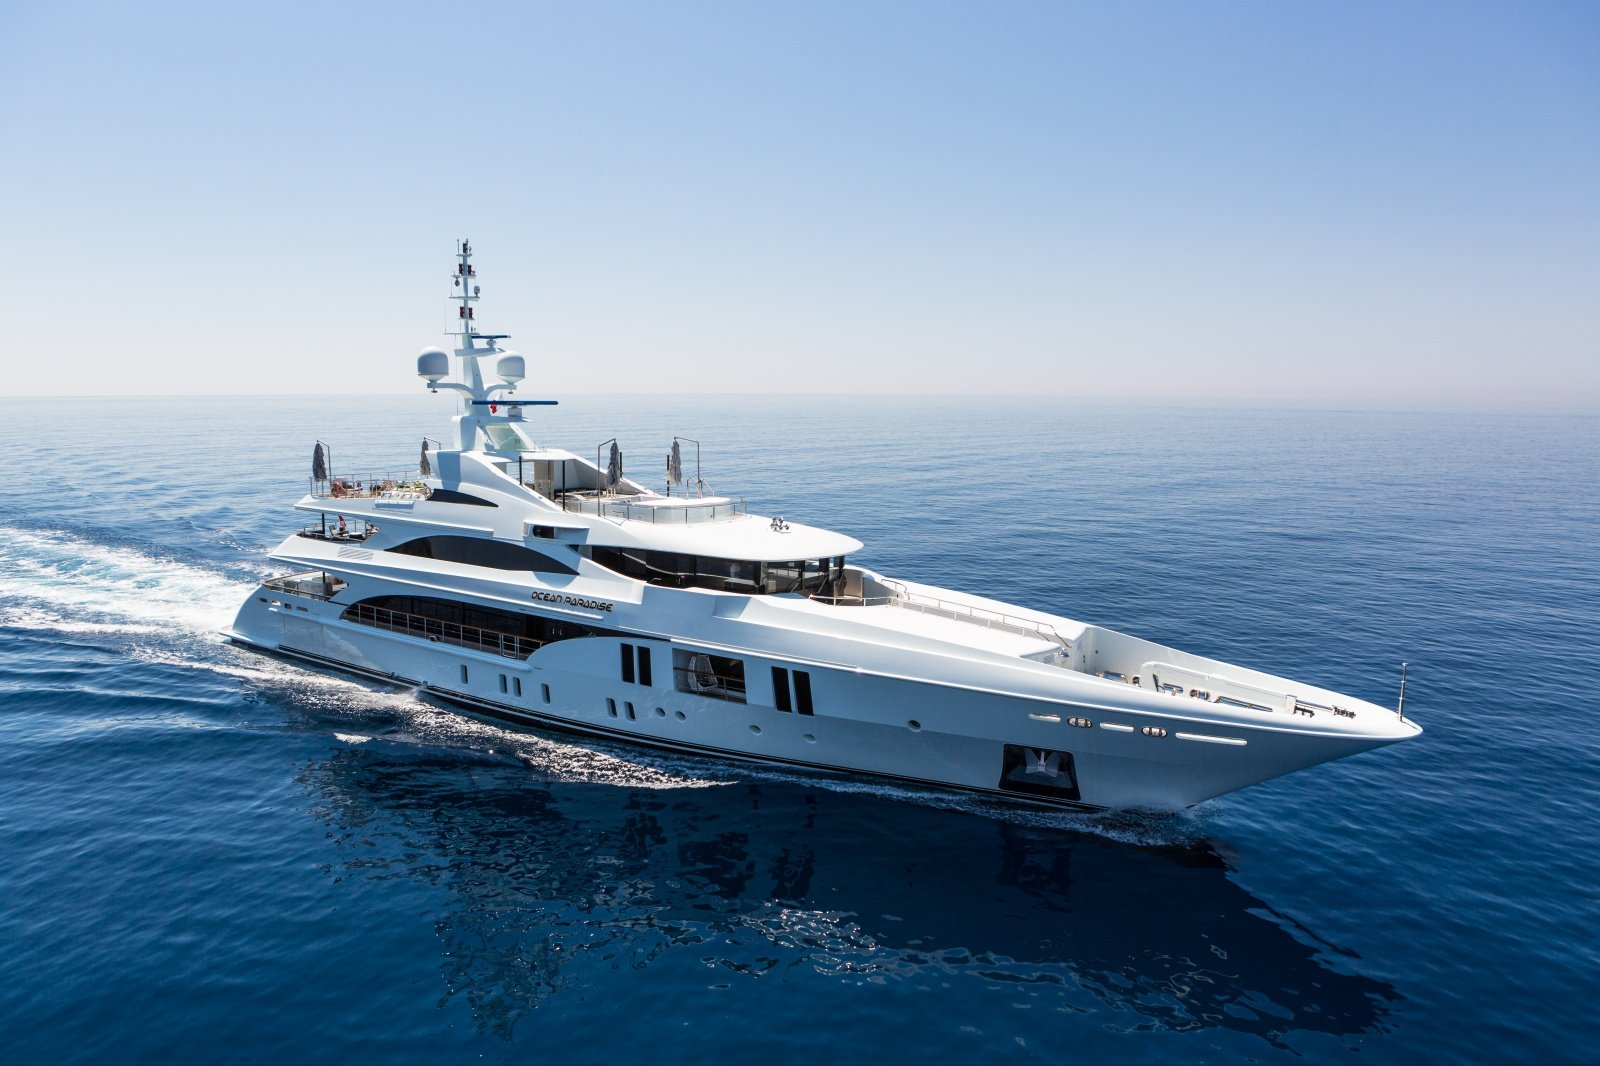 This $130 million superyacht will come with a red carpet entrance and a massive swimming pool -